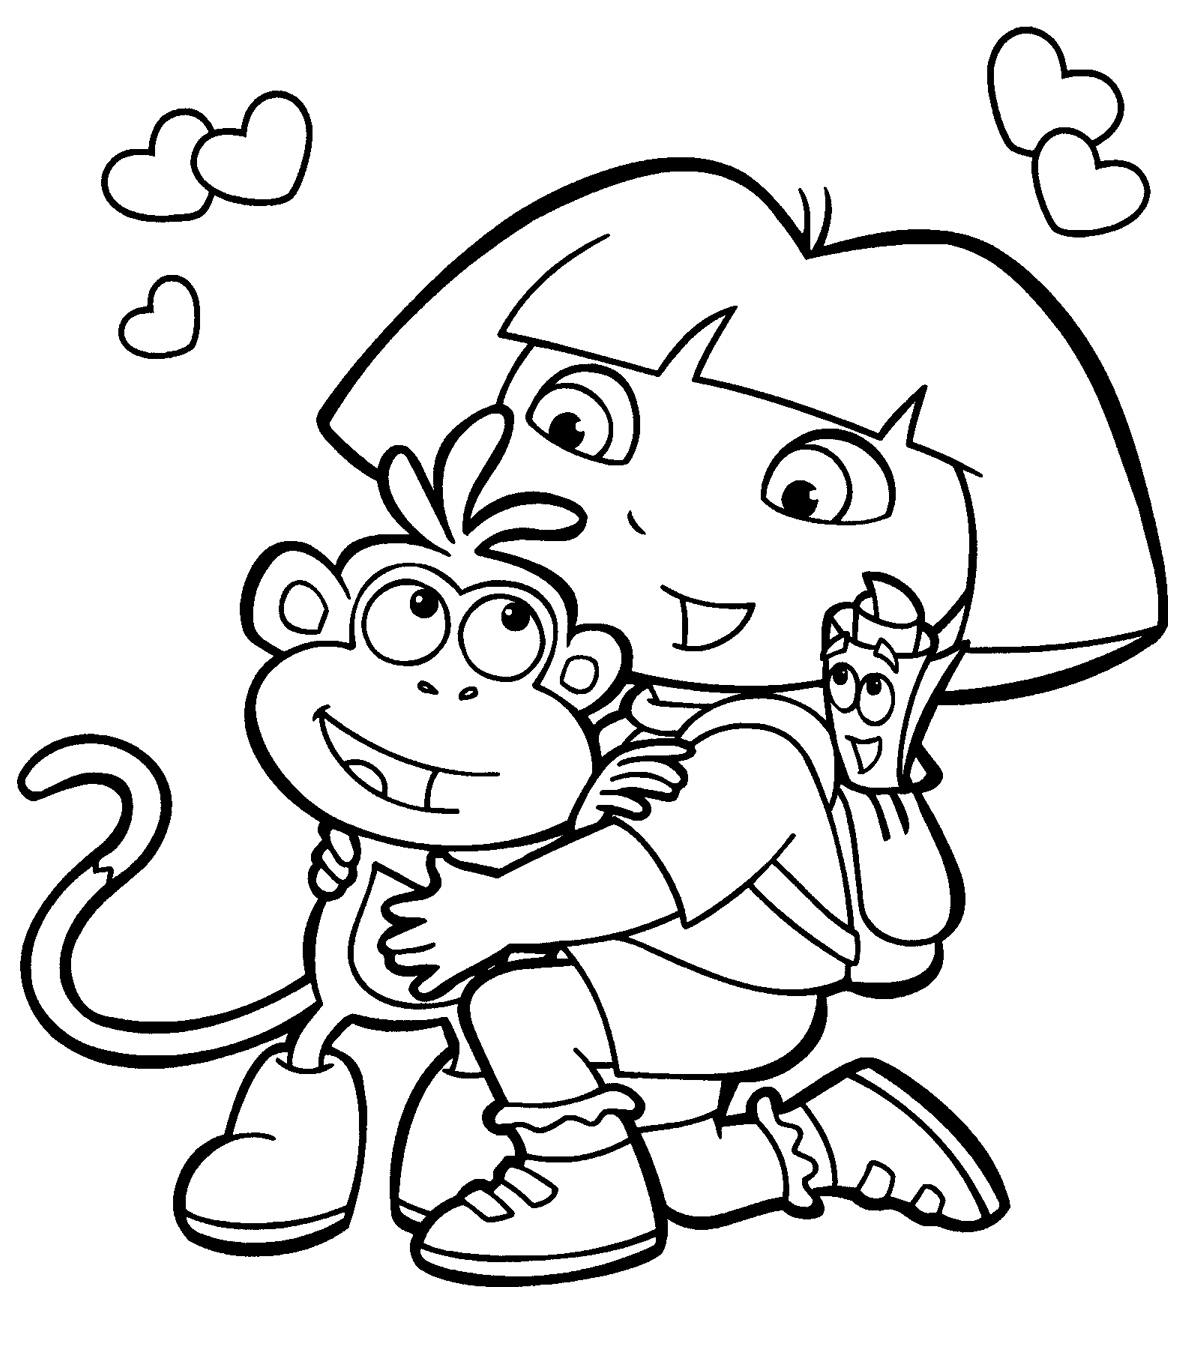 dora the explorer coloring page free printable dora the explorer coloring pages for kids